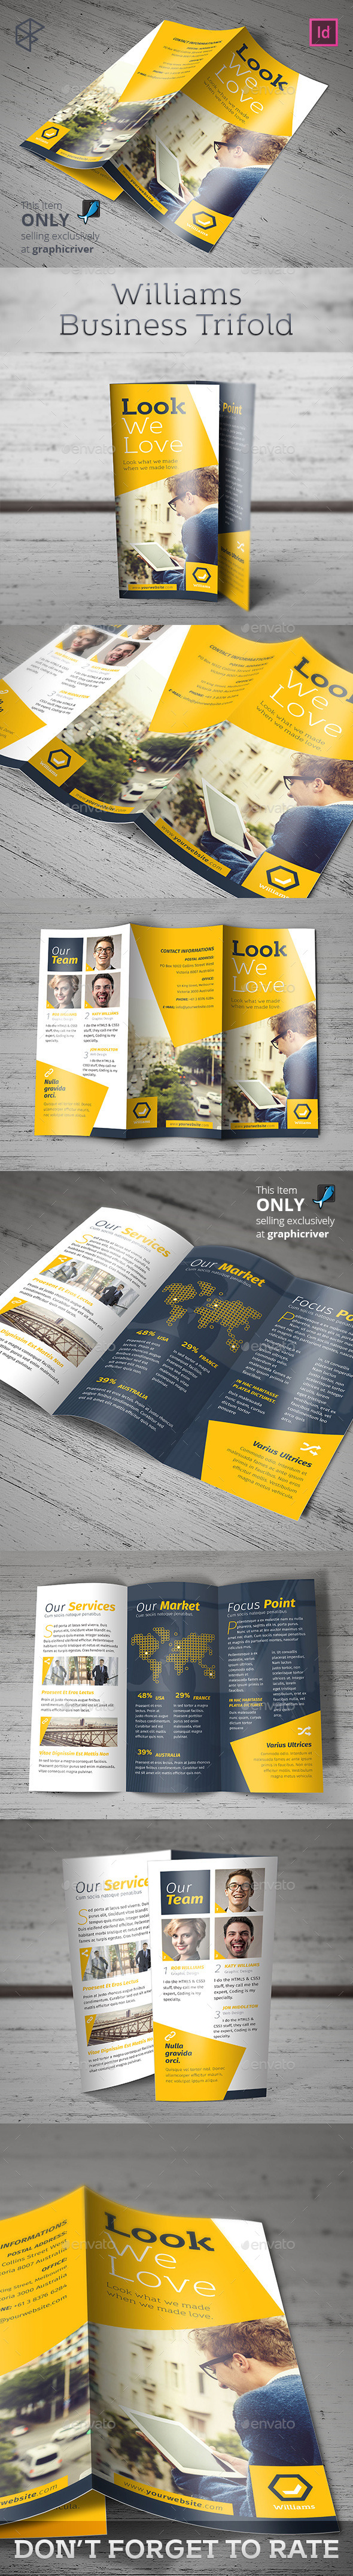 Williams Business Trifold - Corporate Brochures